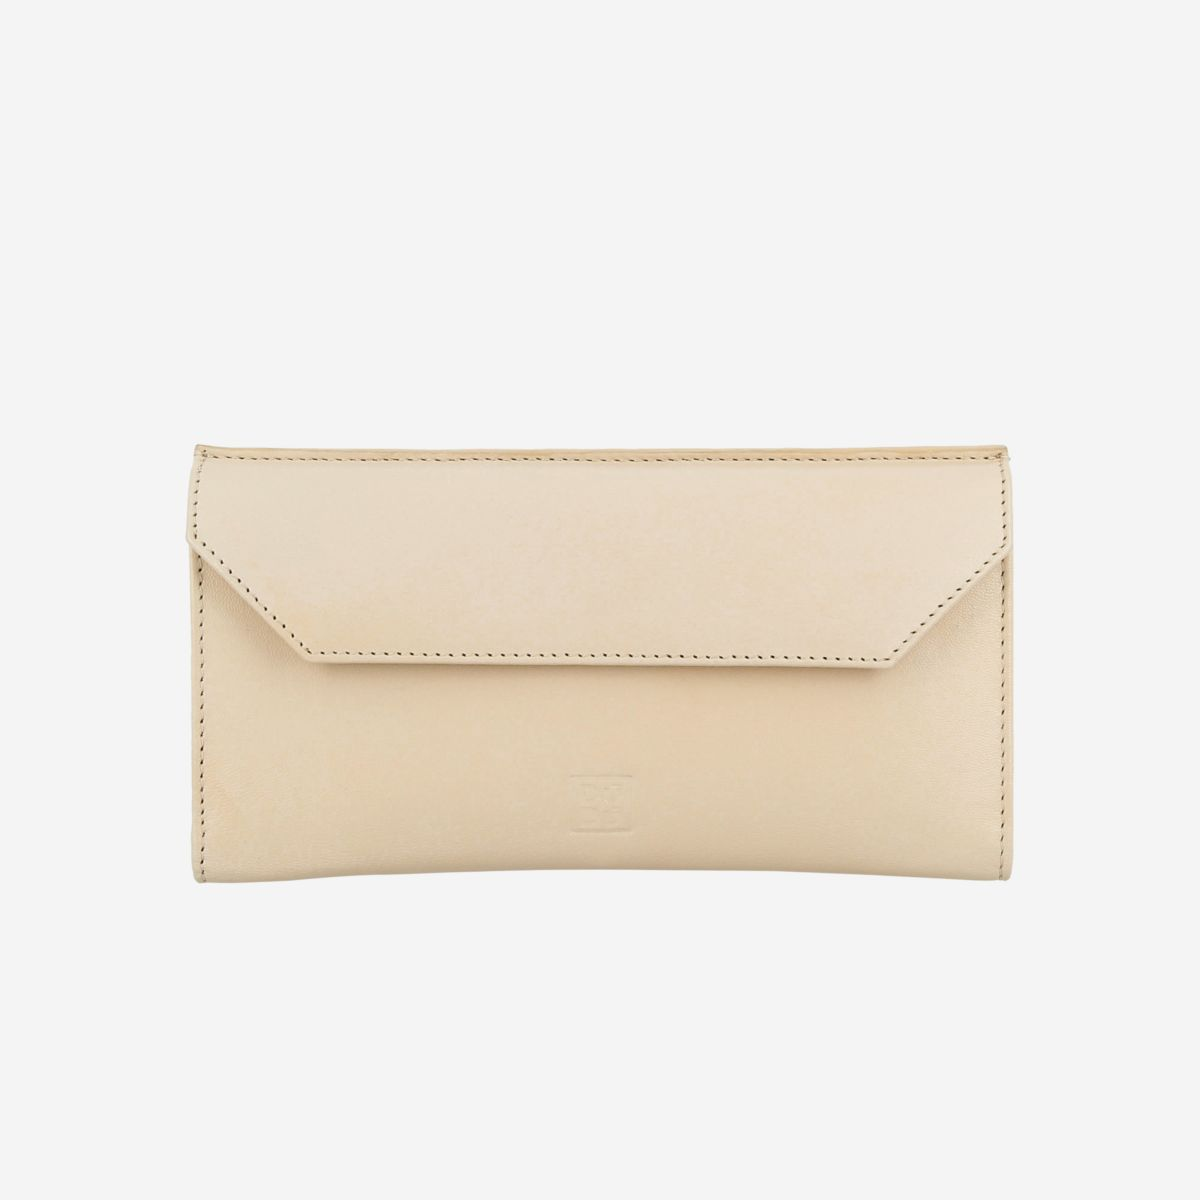 DuDu Ladies Envelope Leather Clutch Wallet Purse  - Ivory